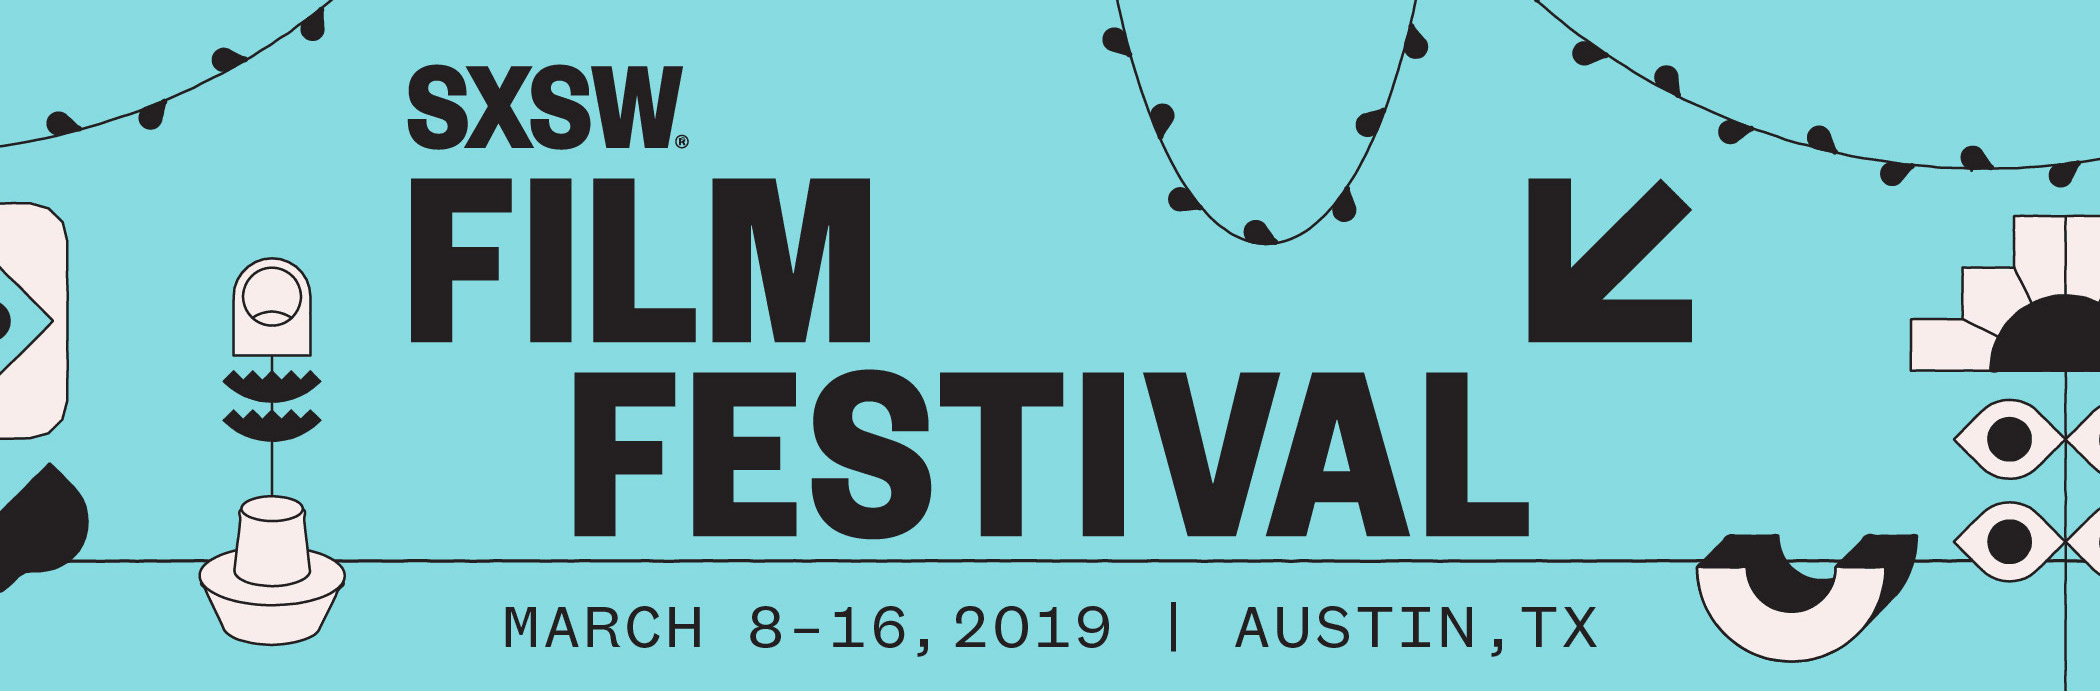 South by Southwest Film Festival 2019